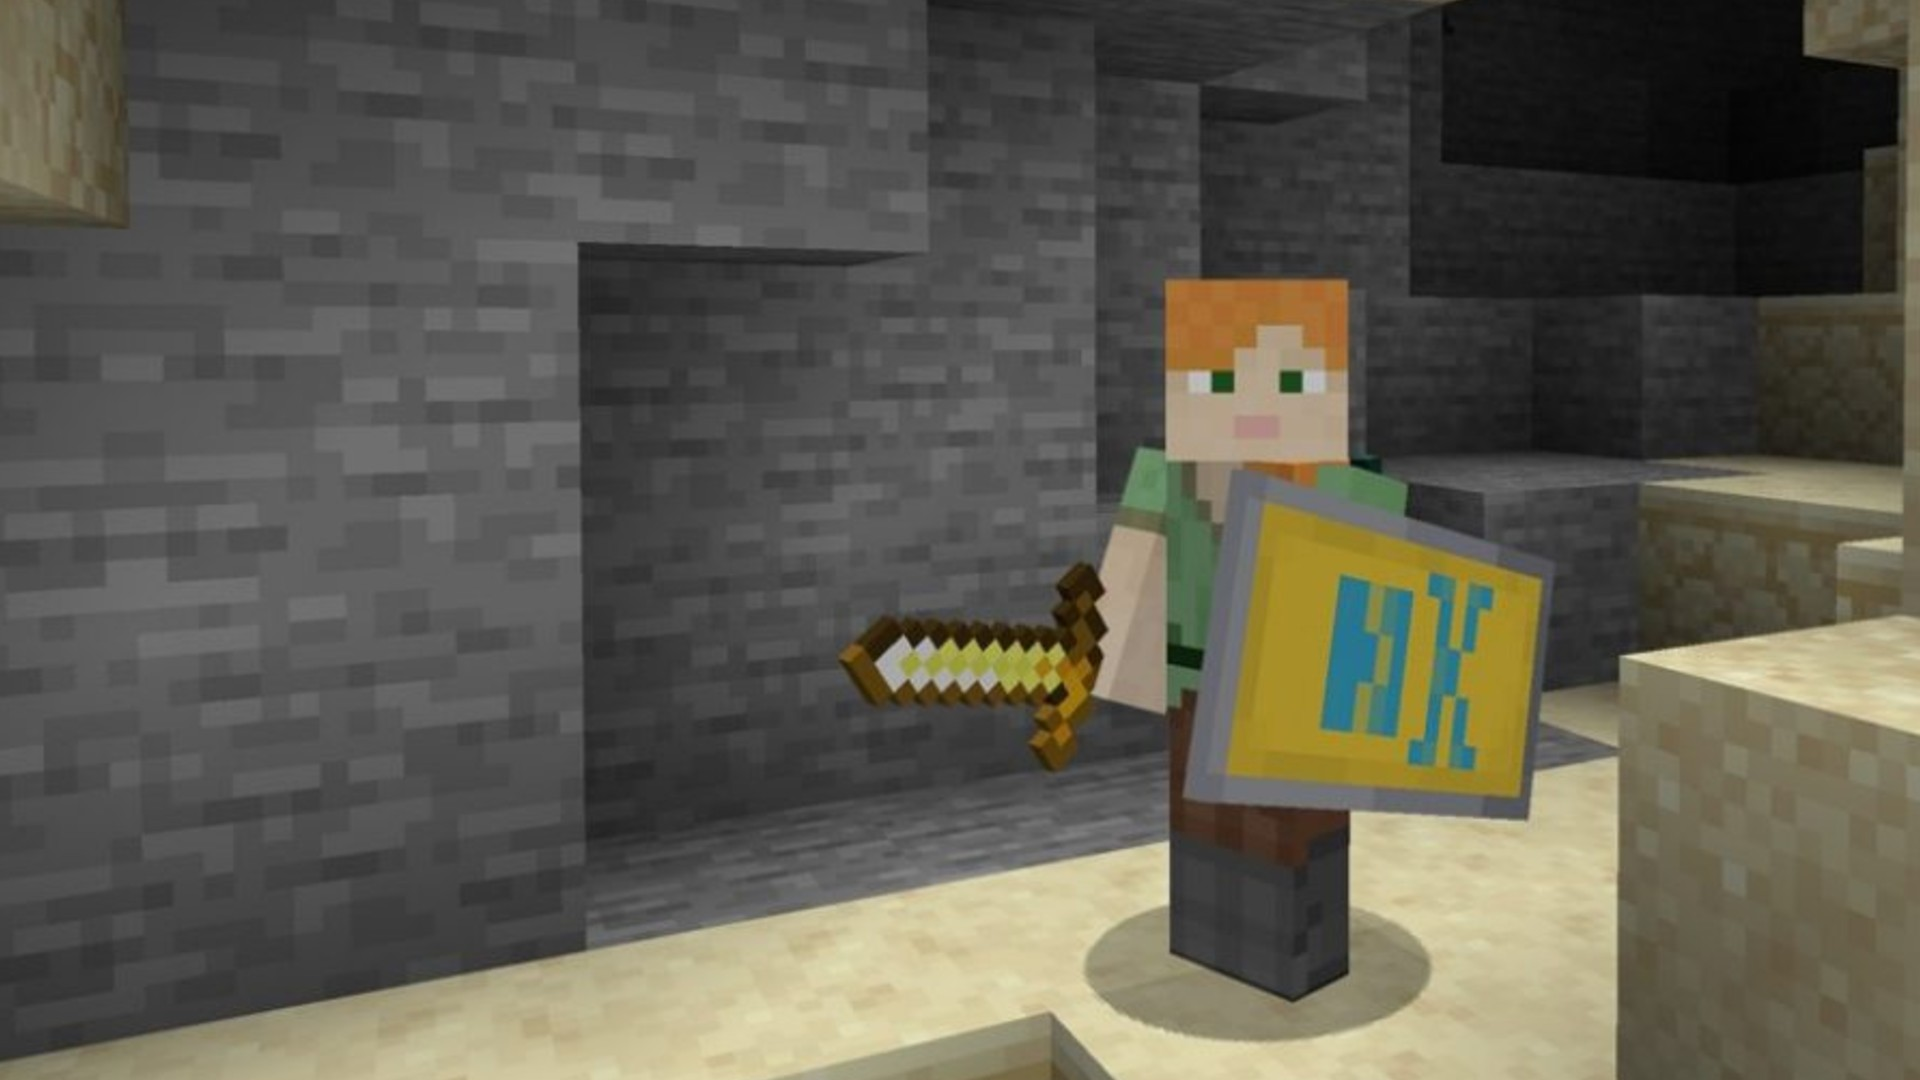 http://web2gb.com/how-to-make-a-book-in-minecraft/